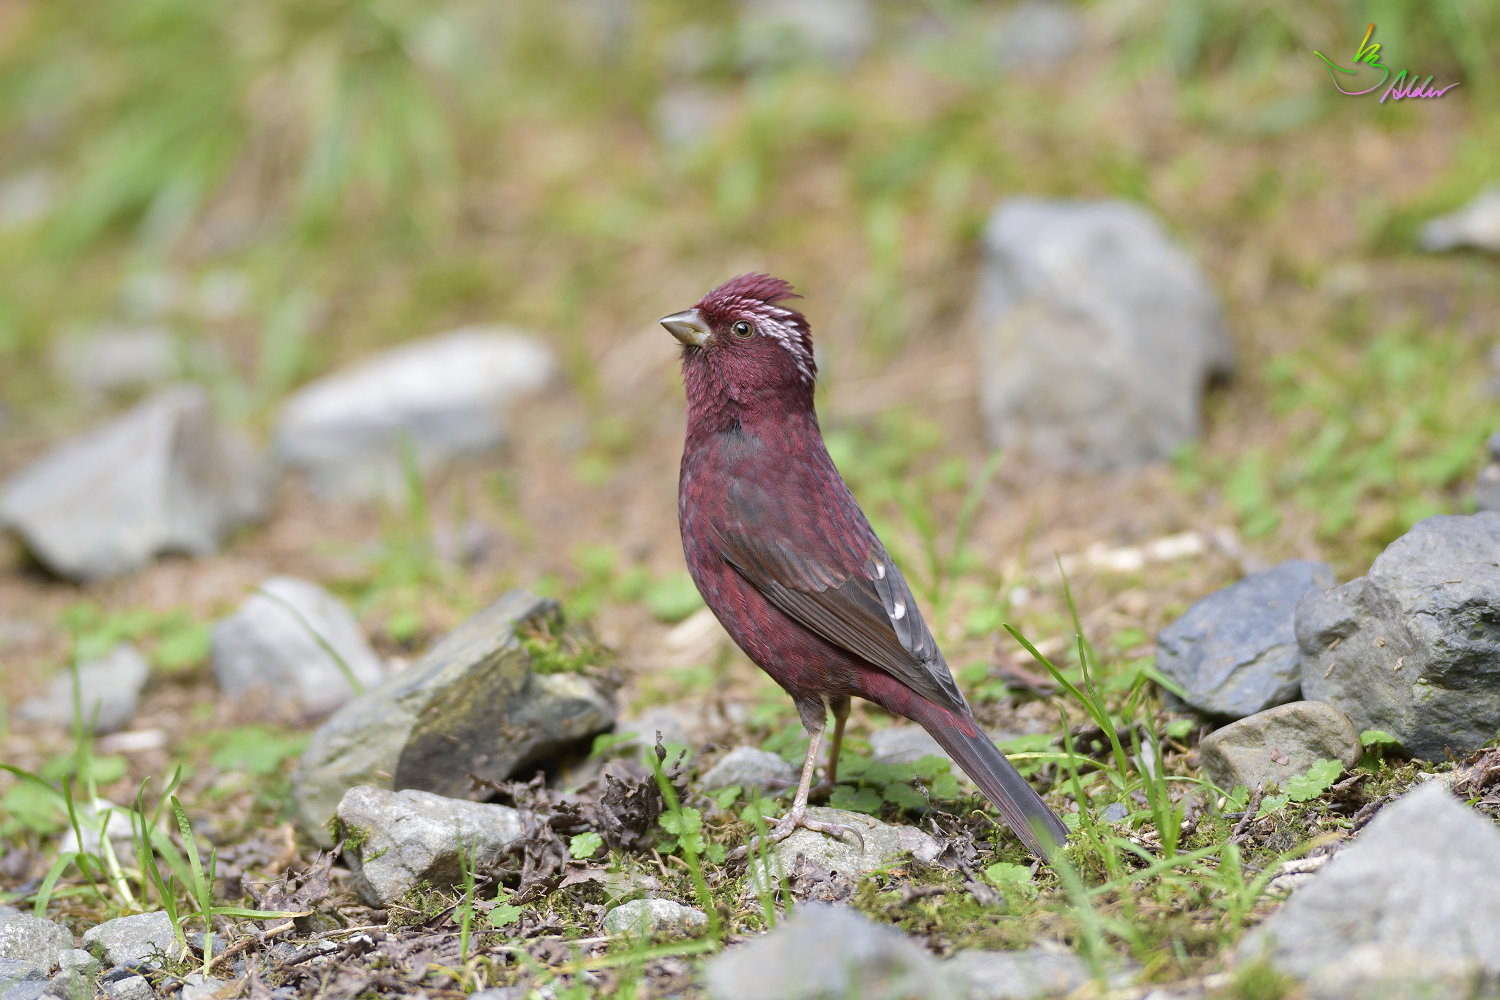 Vinacceus_Rose_Finch_5315